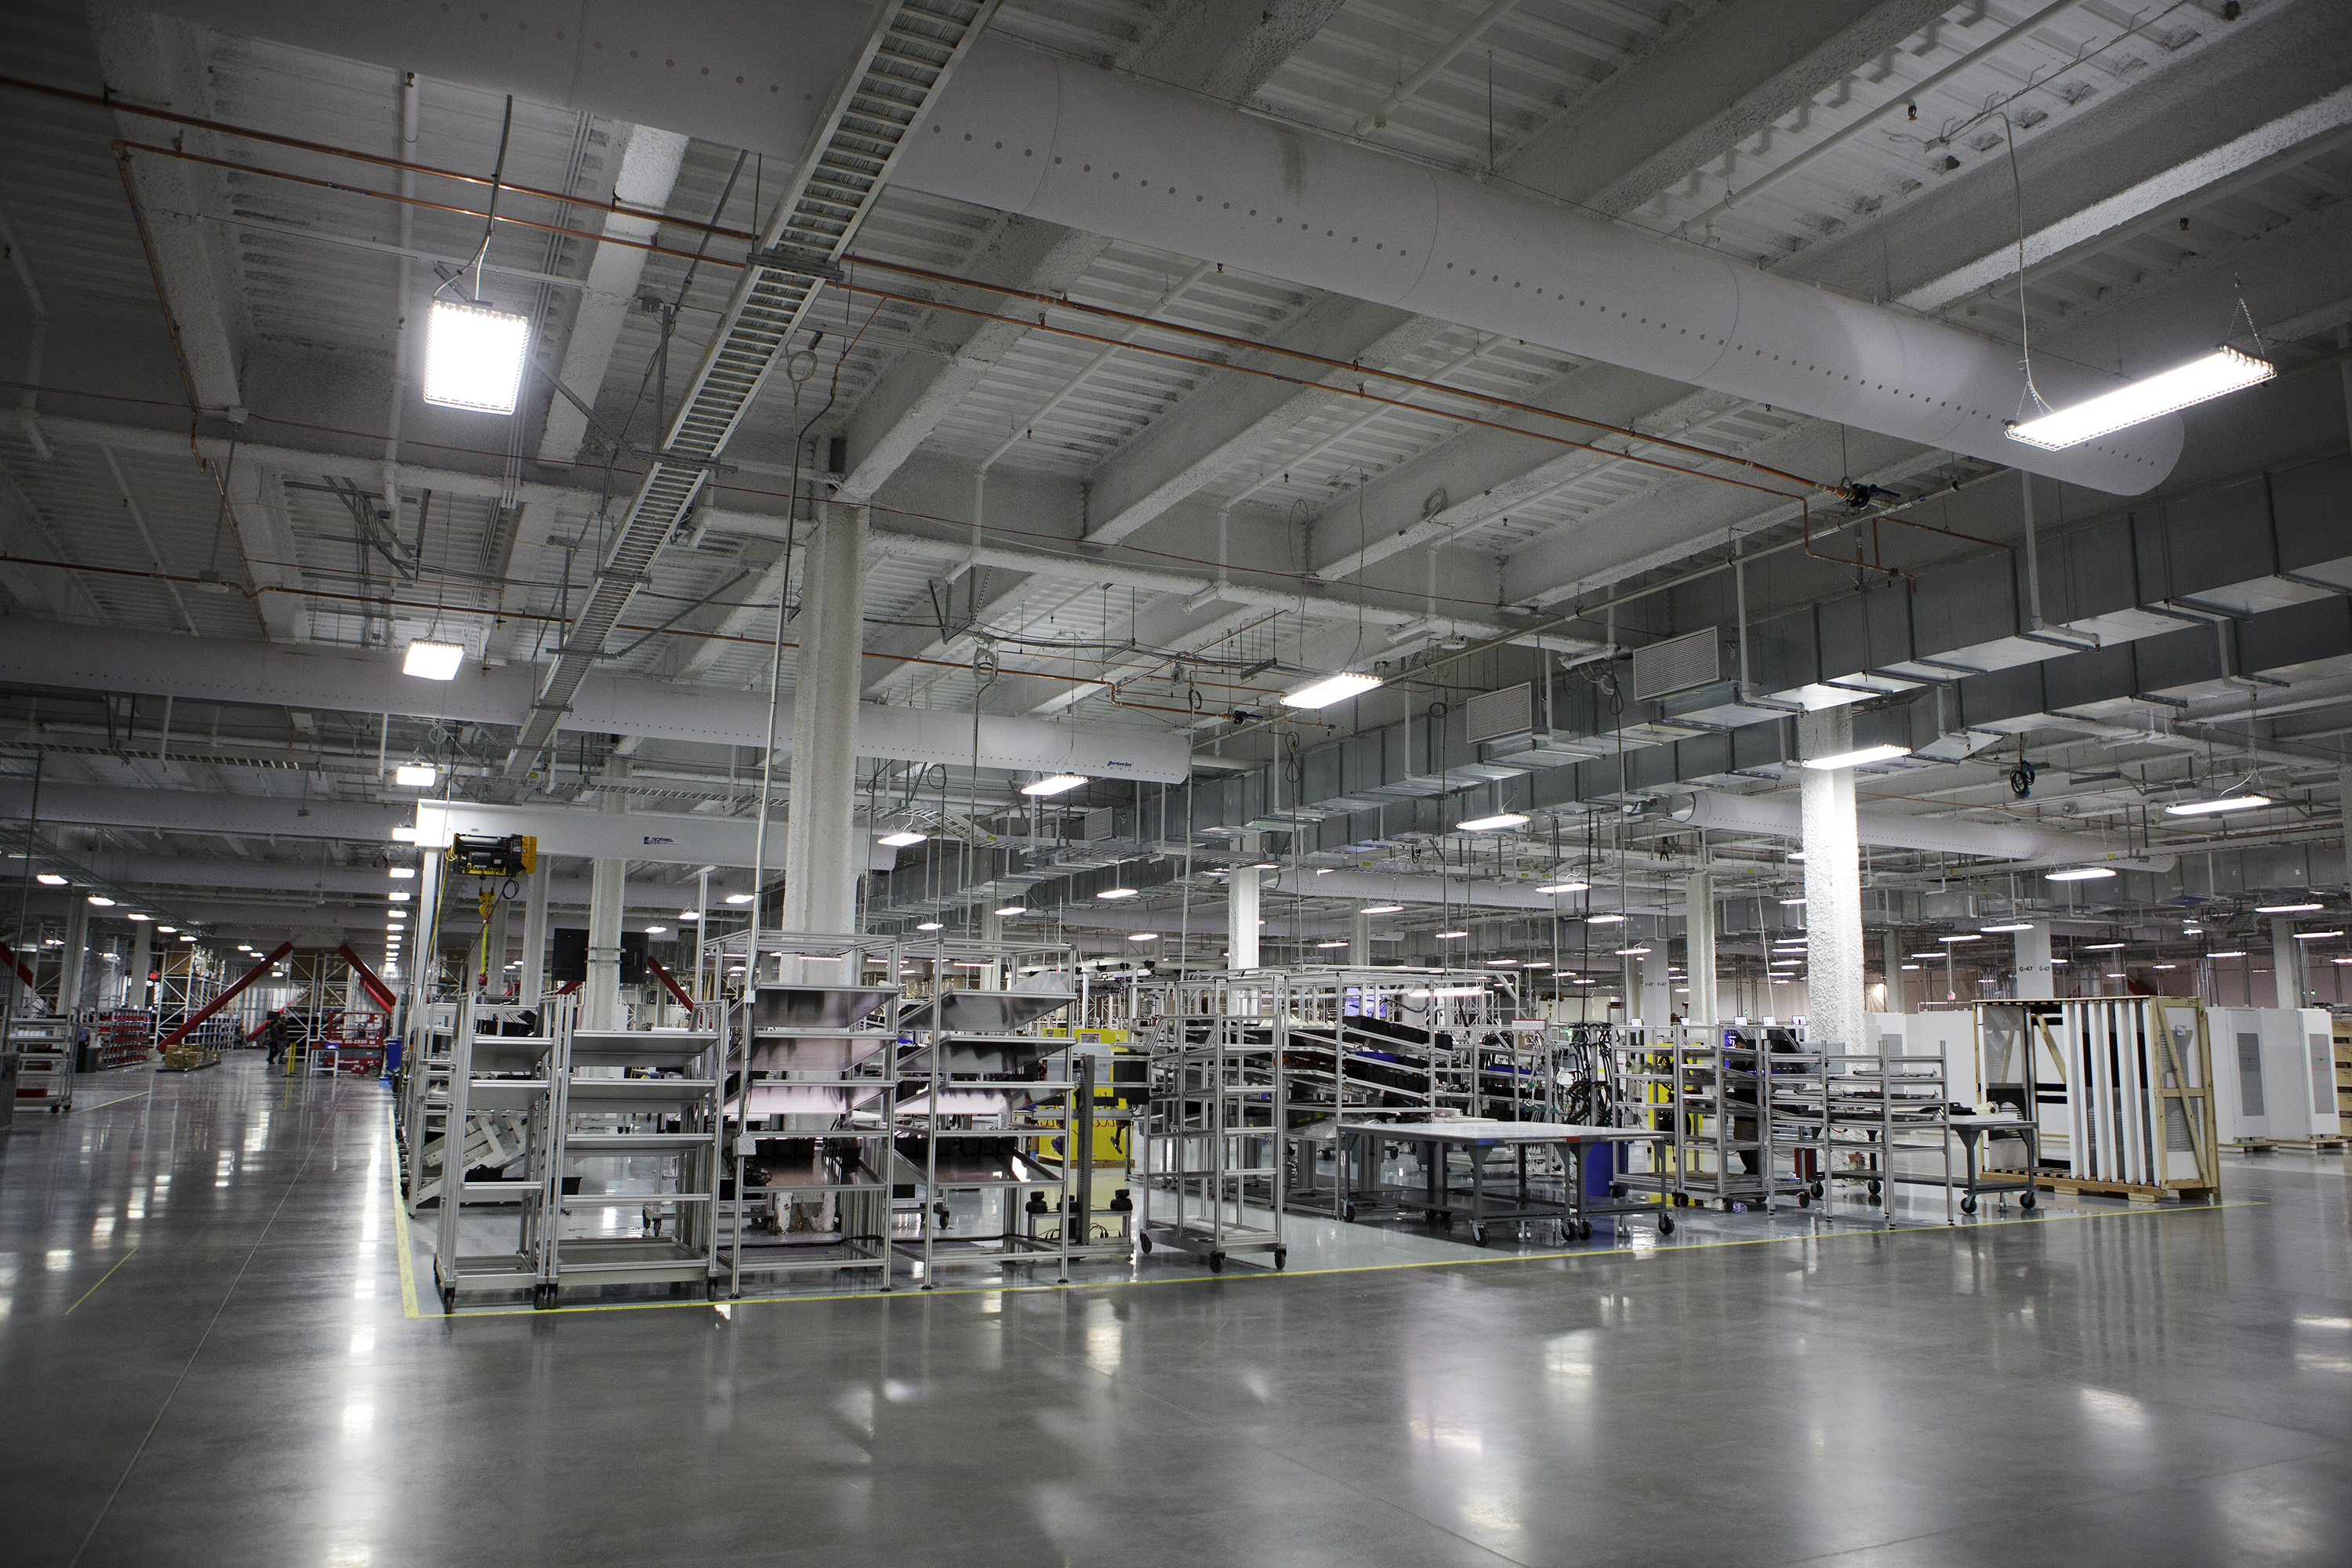 Tour Of Tesla Motors Inc.'s Gigafactory With Remarks By Chief Executive Officer Elon Musk And Co-Founder Jeffrey Straubel